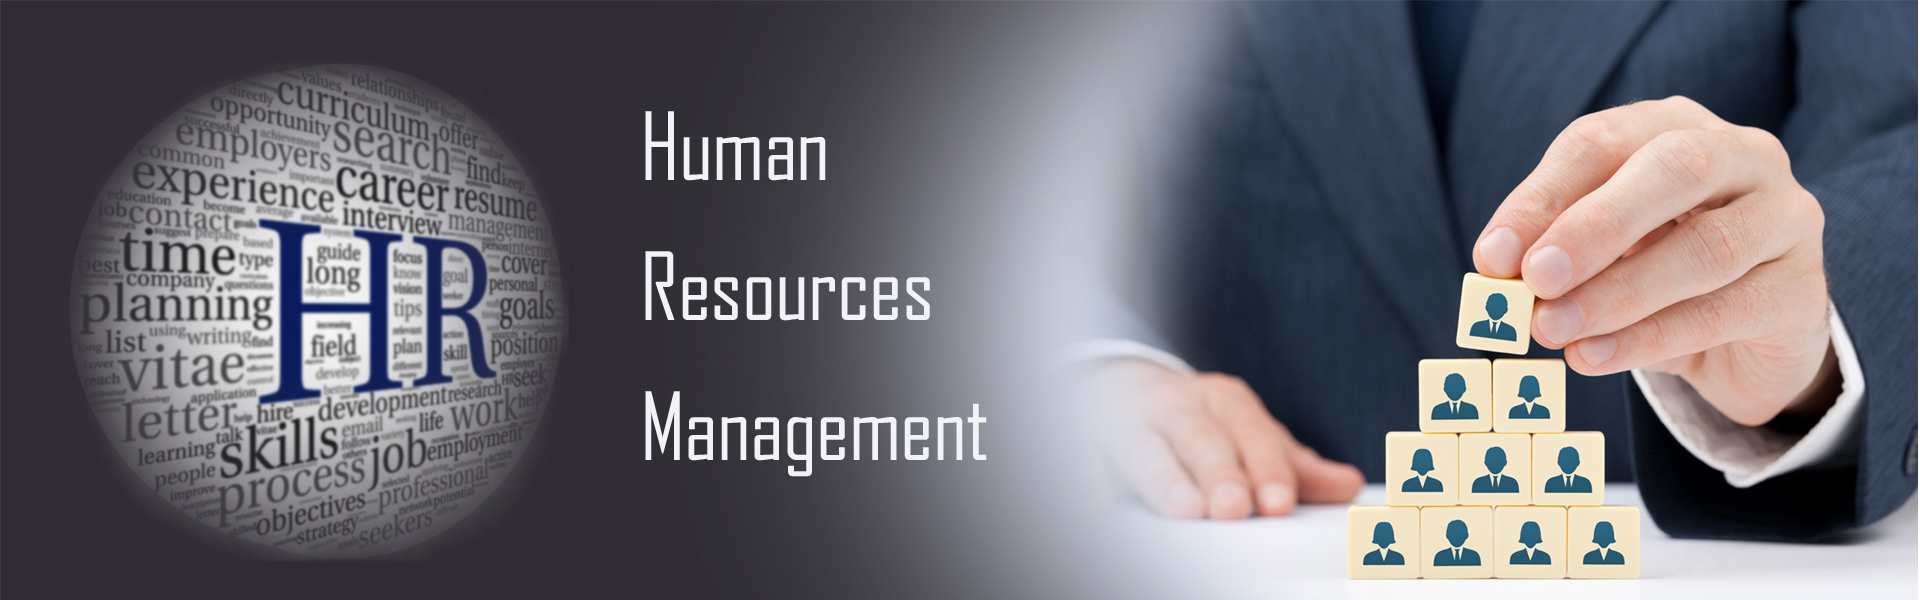 Unit 18 Human Resources Management Assignment Hilton Hotel - Assignment Help in UK